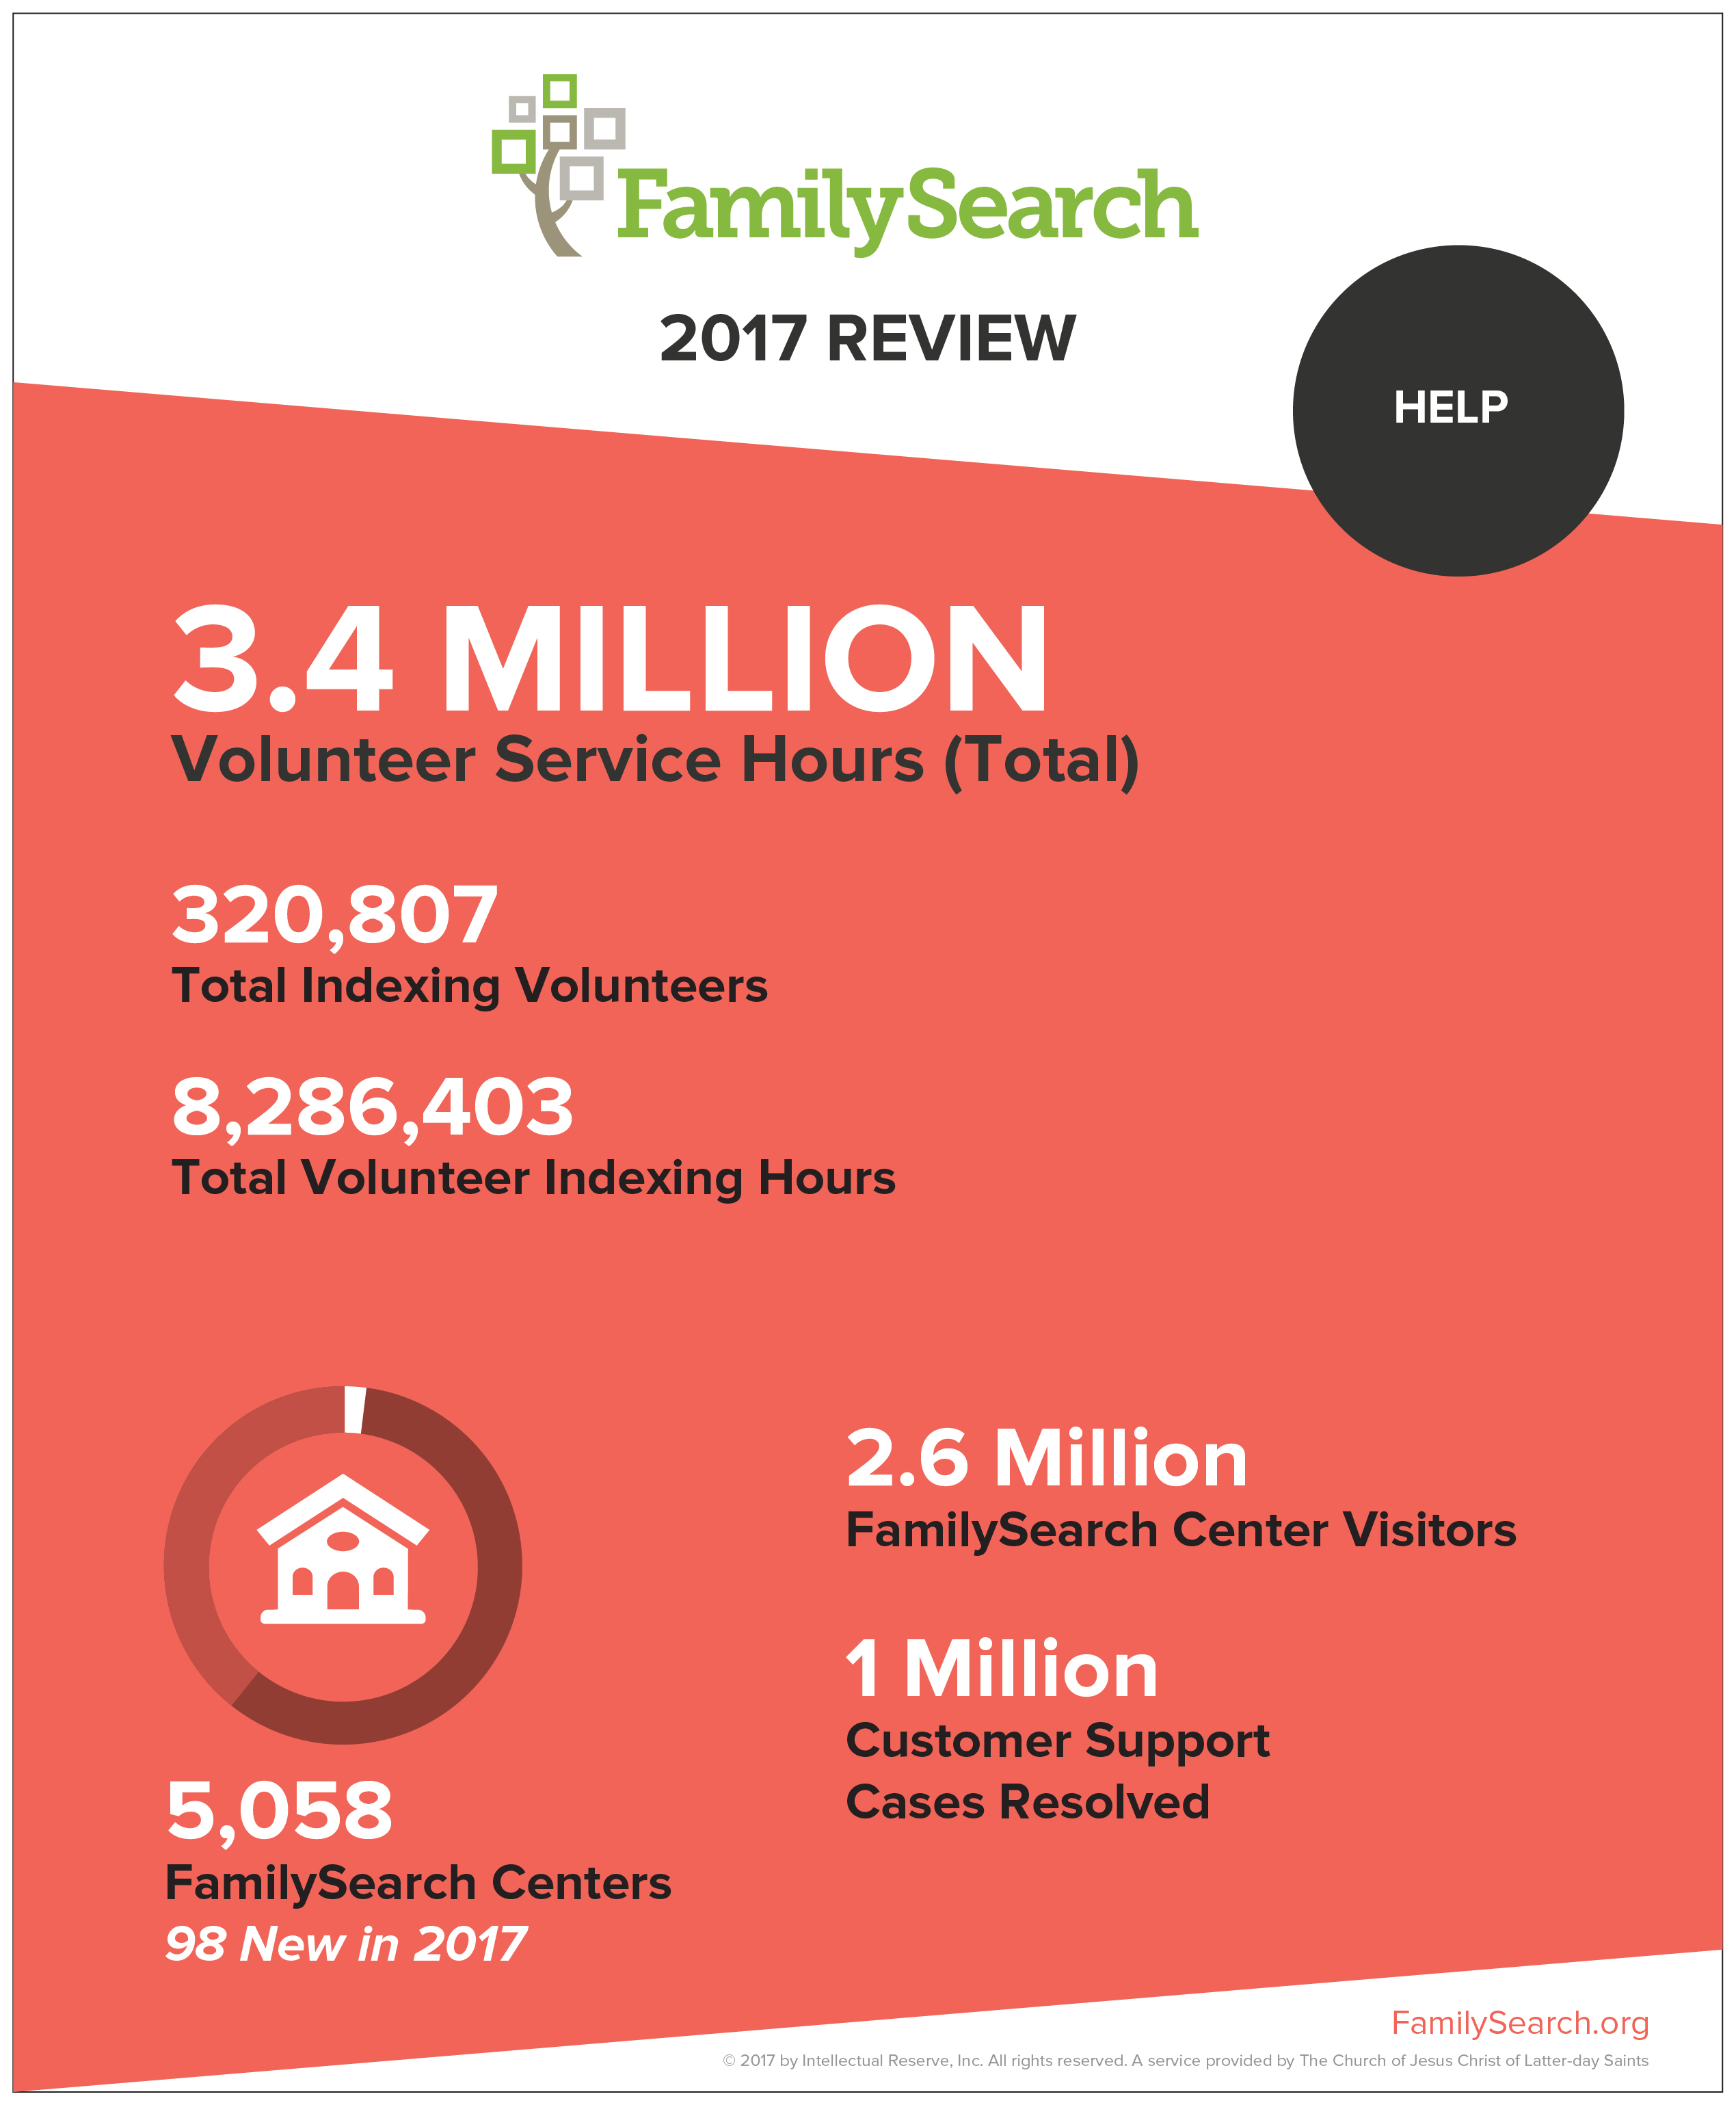 FamilySearch helps millions of patrons through free records access and local assistance, all fueled by volunteers.